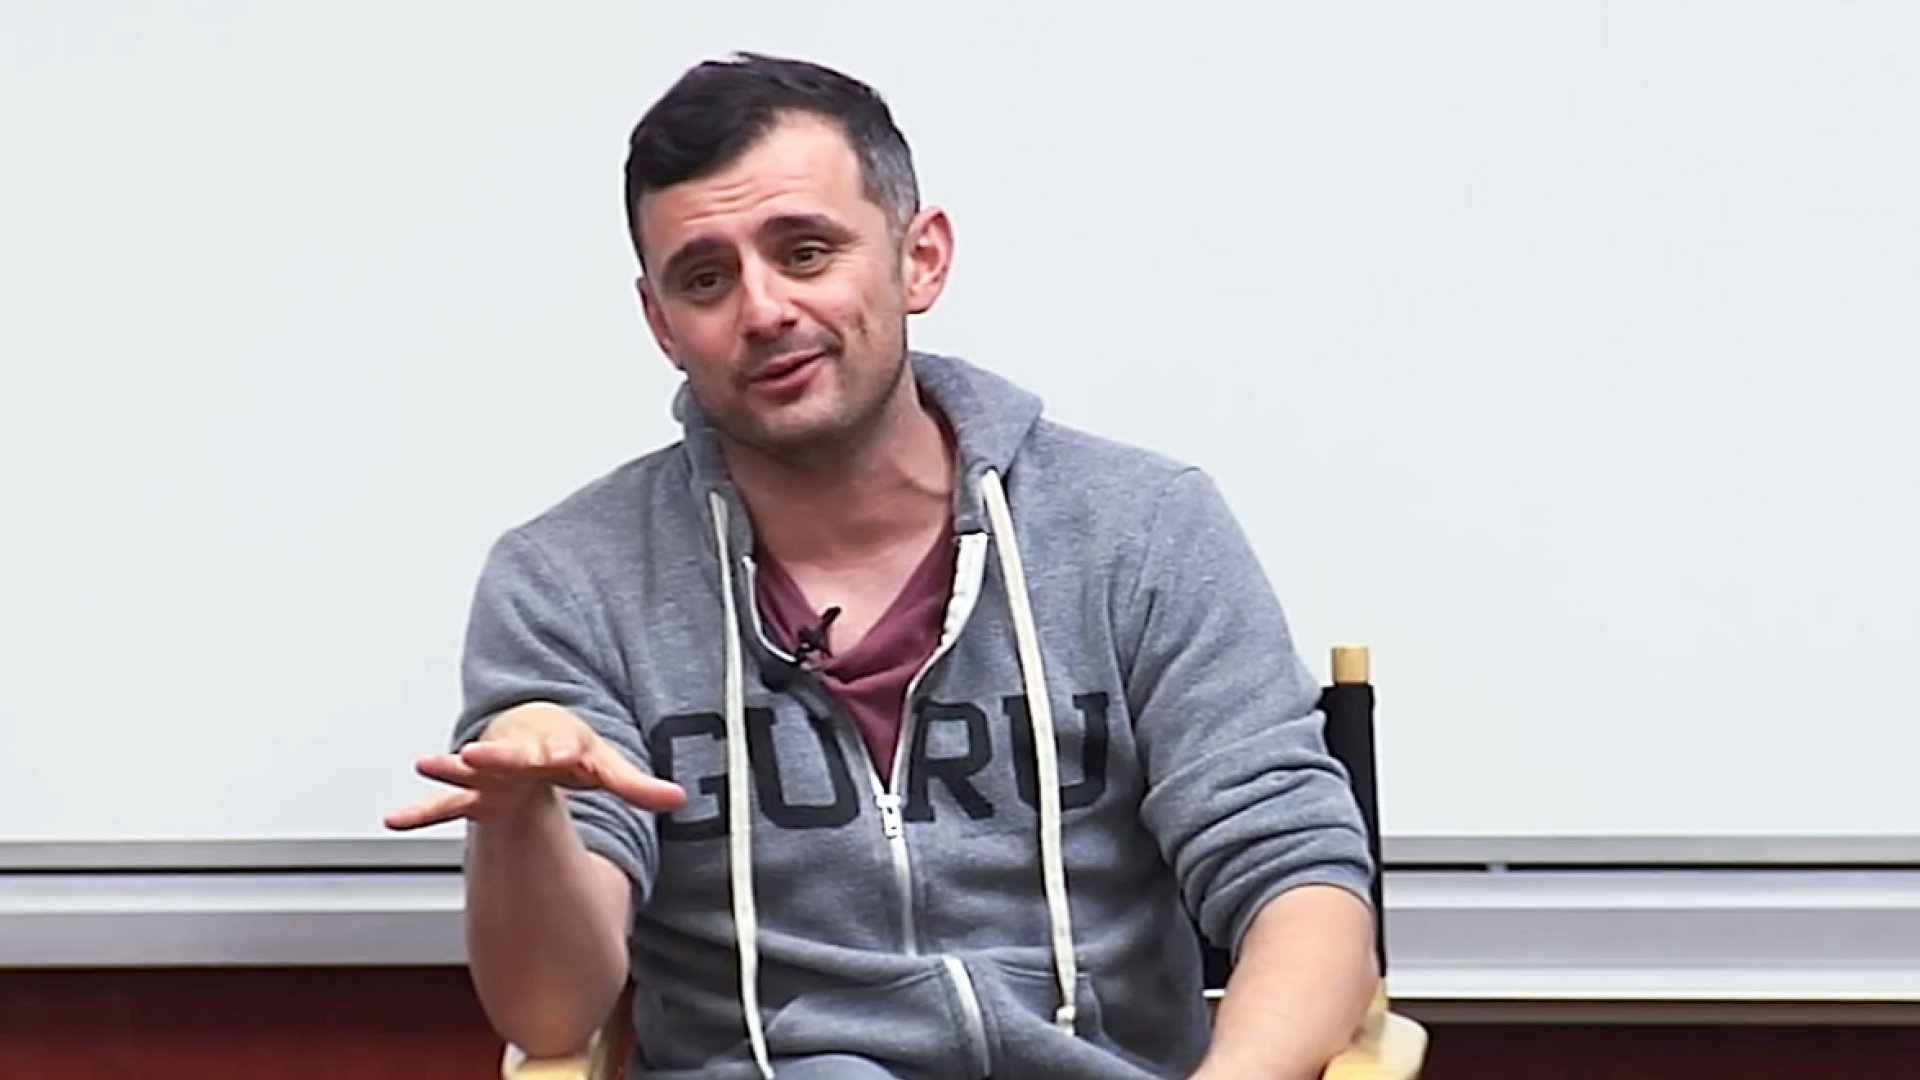 Gary Vaynerchuk: You Need to Bet on Your Strengths